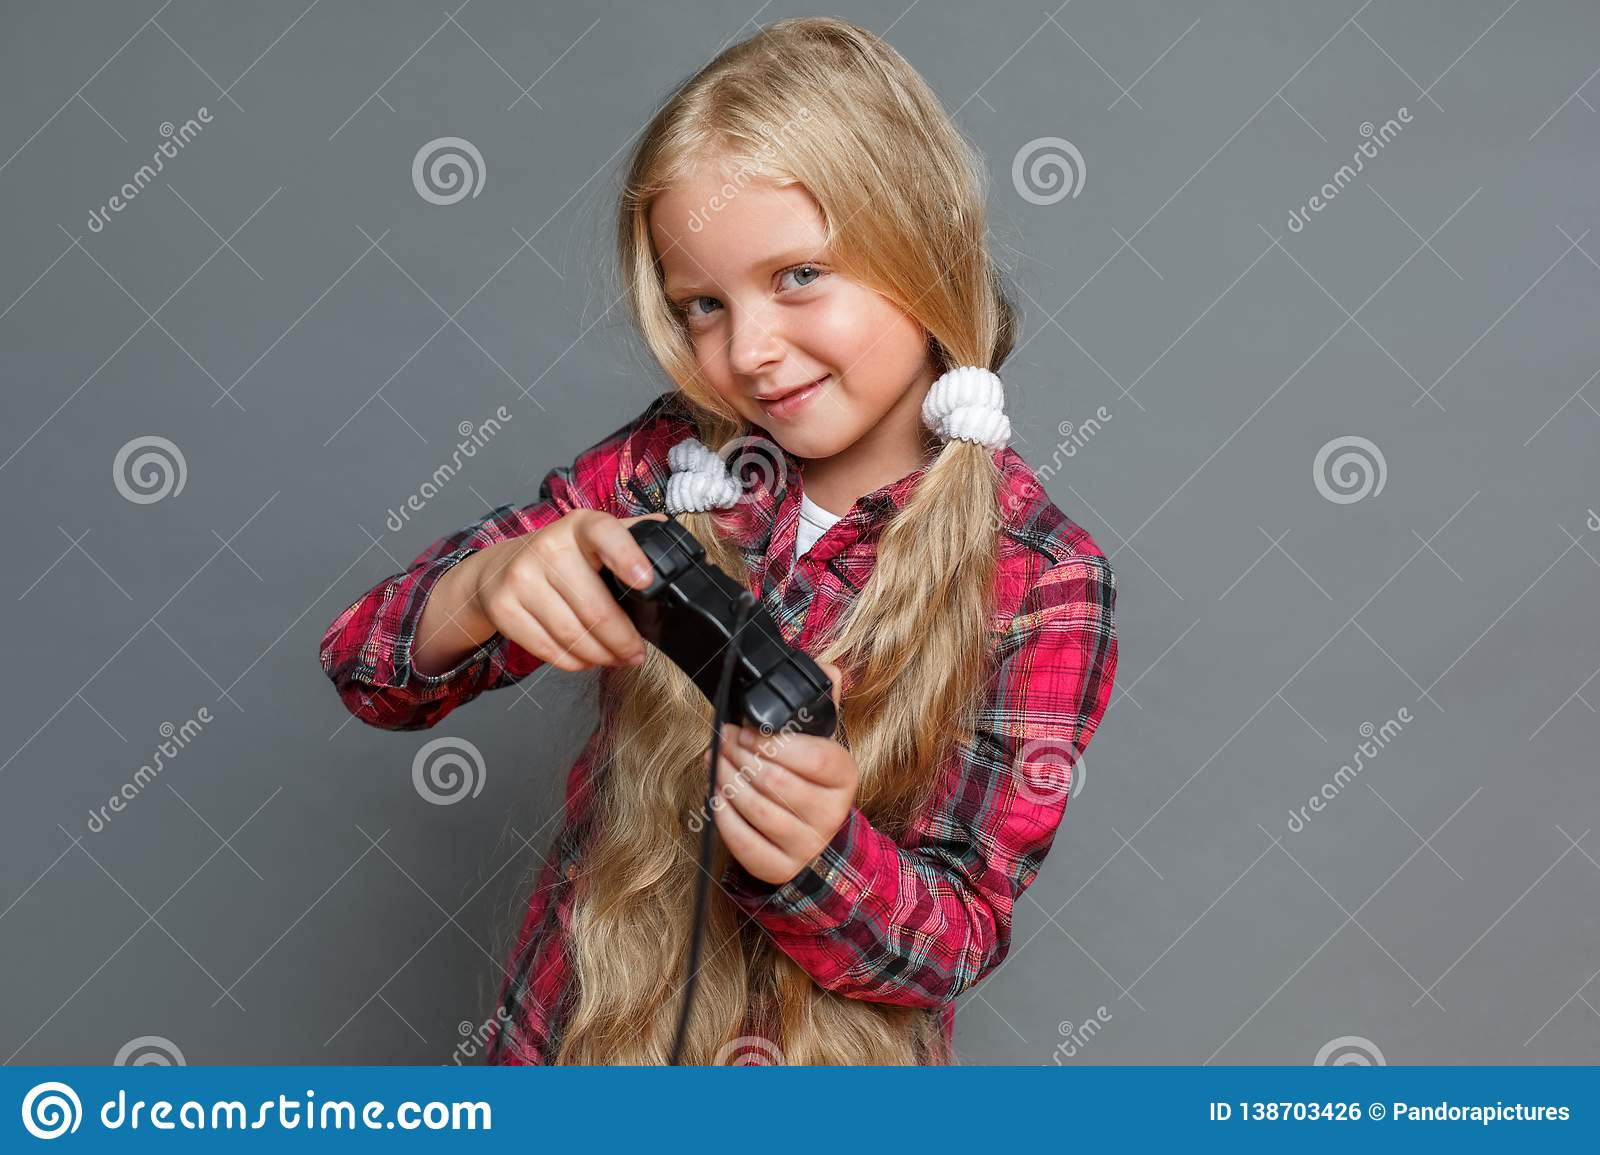 Stupendous Little Girl With Ponytails Standing Isolated On Grey Playing Game Schematic Wiring Diagrams Phreekkolirunnerswayorg